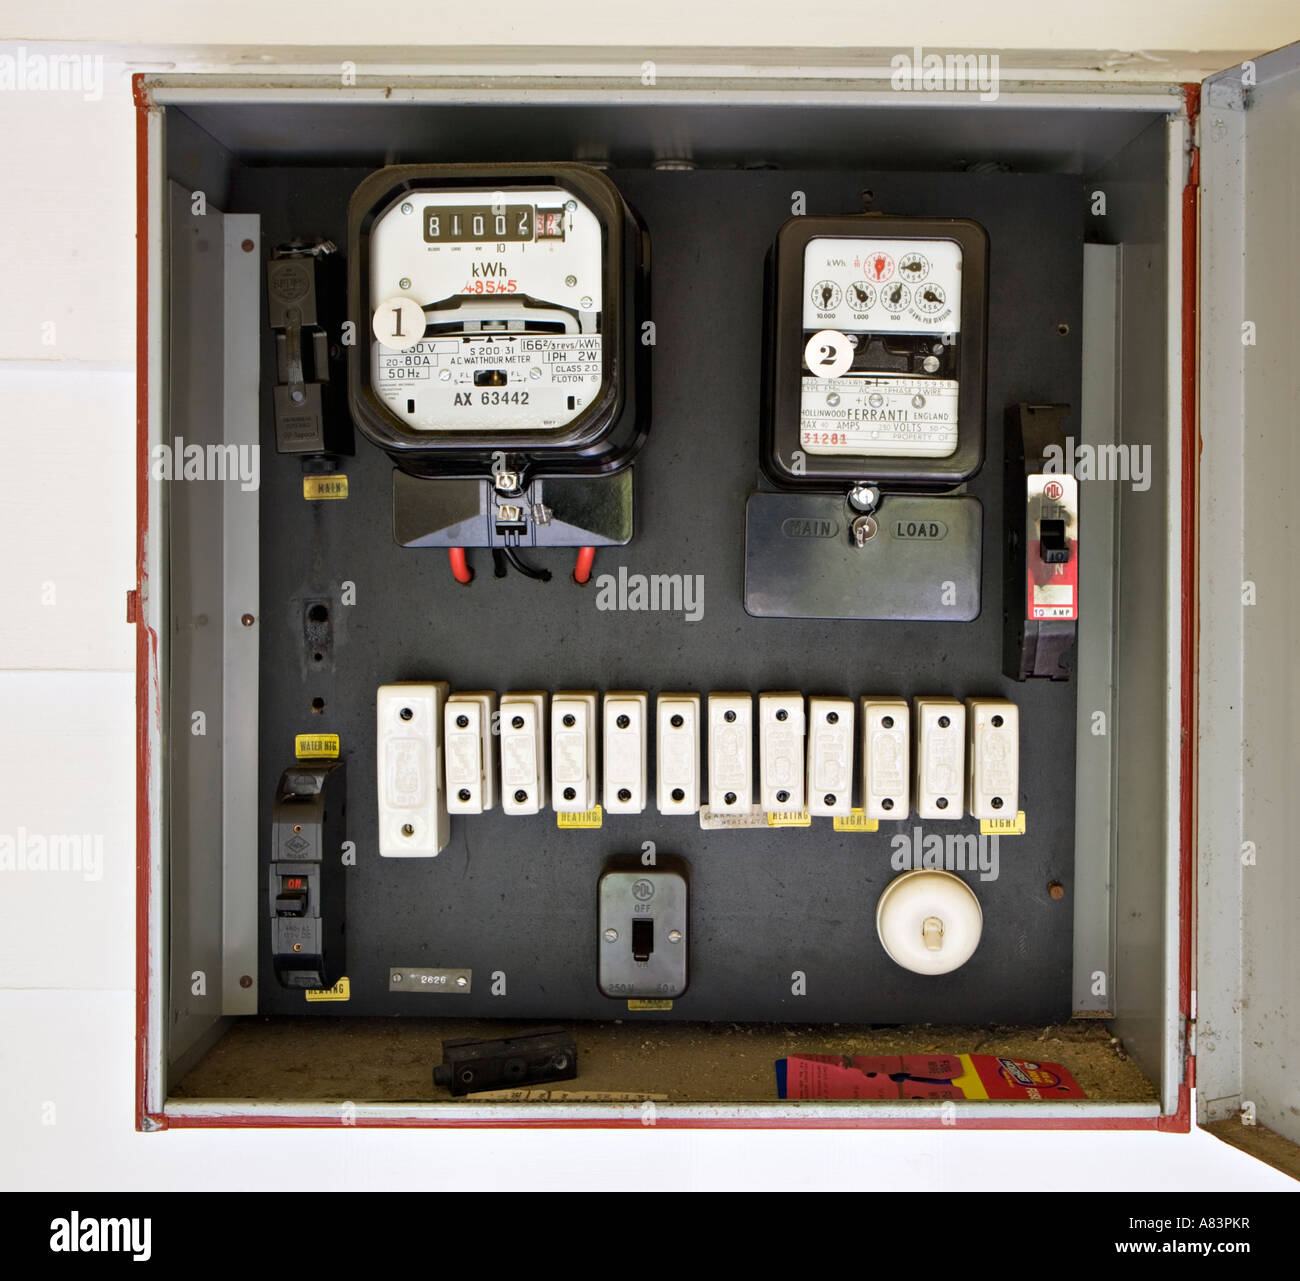 Excellent Meter Panel Wiring Wiring Diagram Wiring Digital Resources Indicompassionincorg